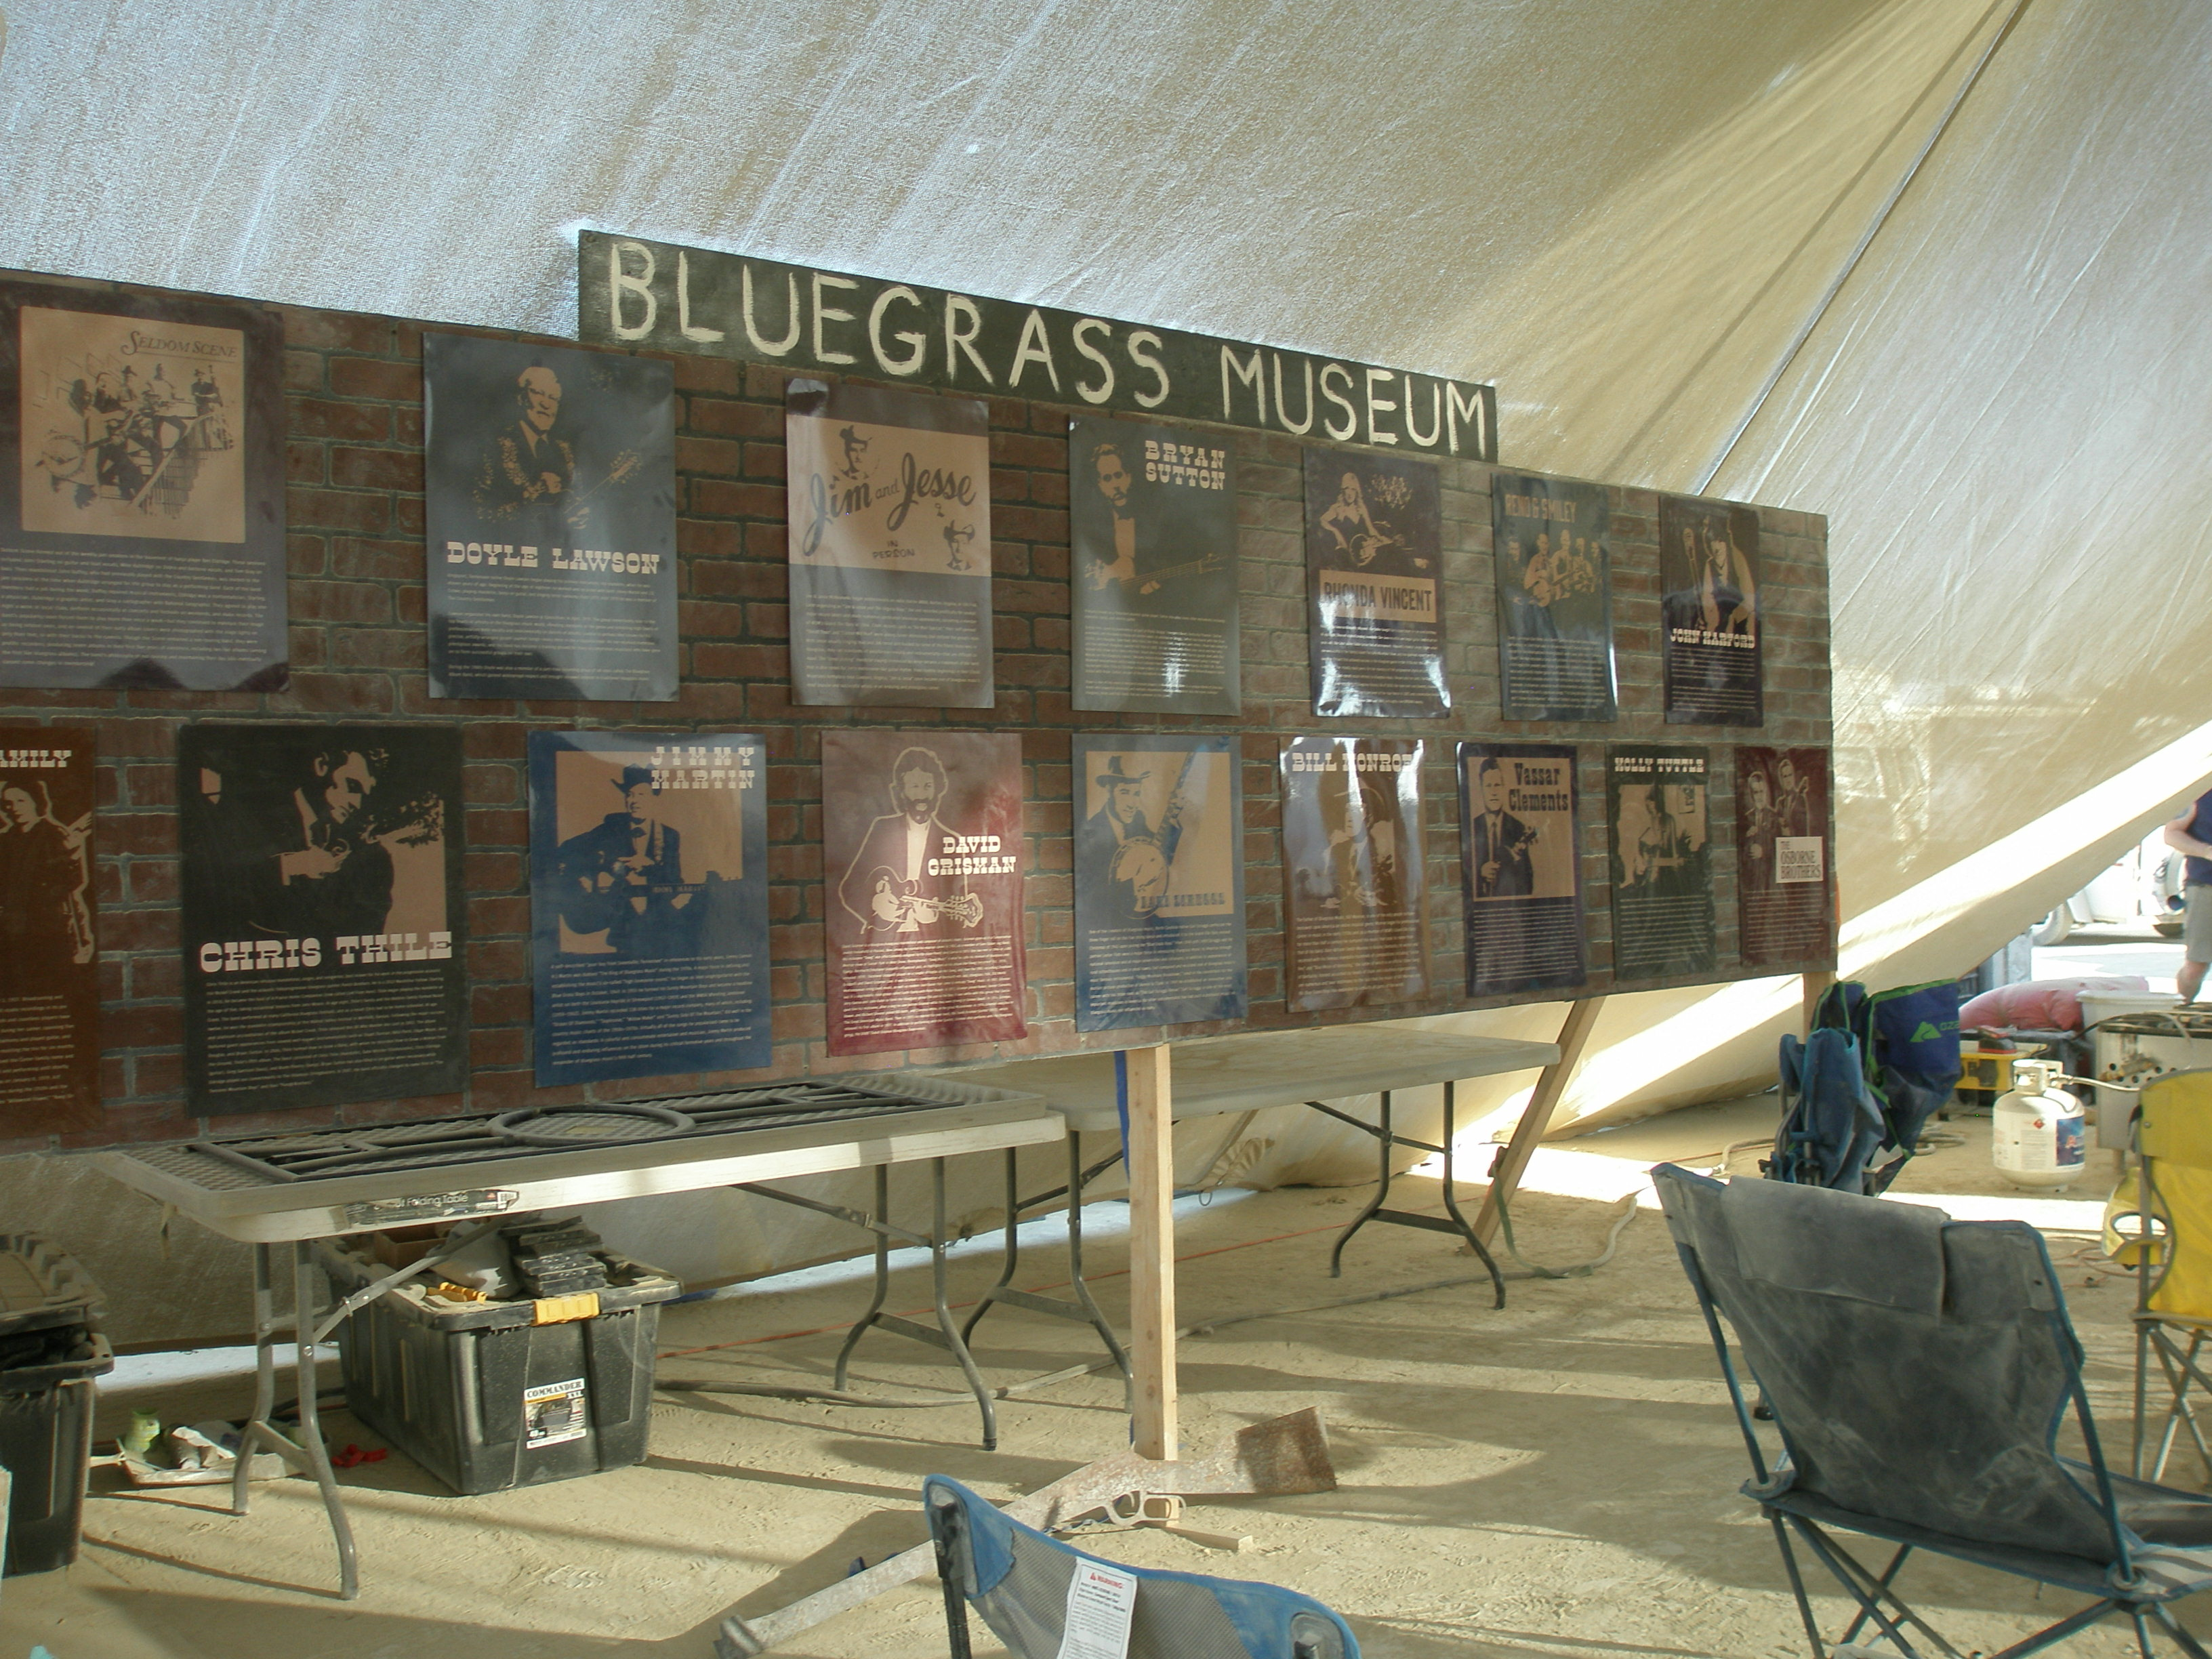 Bluegrass Music Museum 2018